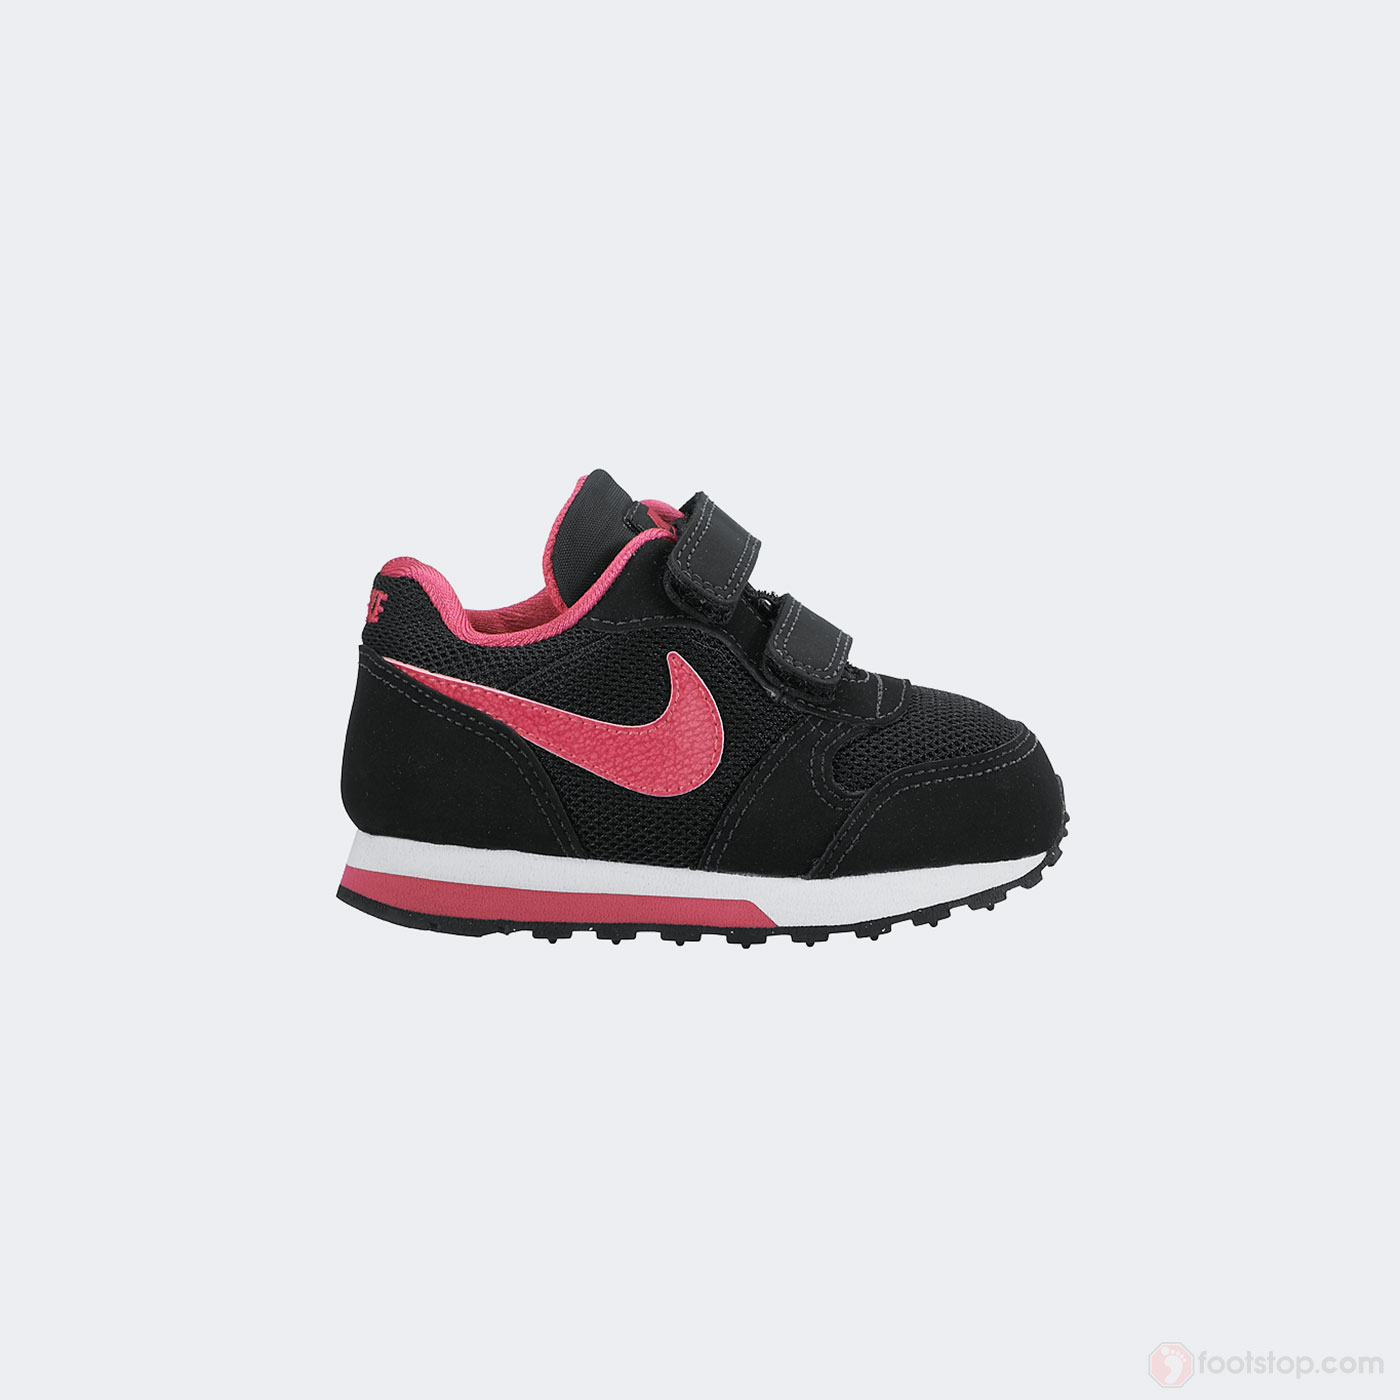 00fe8b6d2d6 nike md runner 2 (807328-006) - footstop